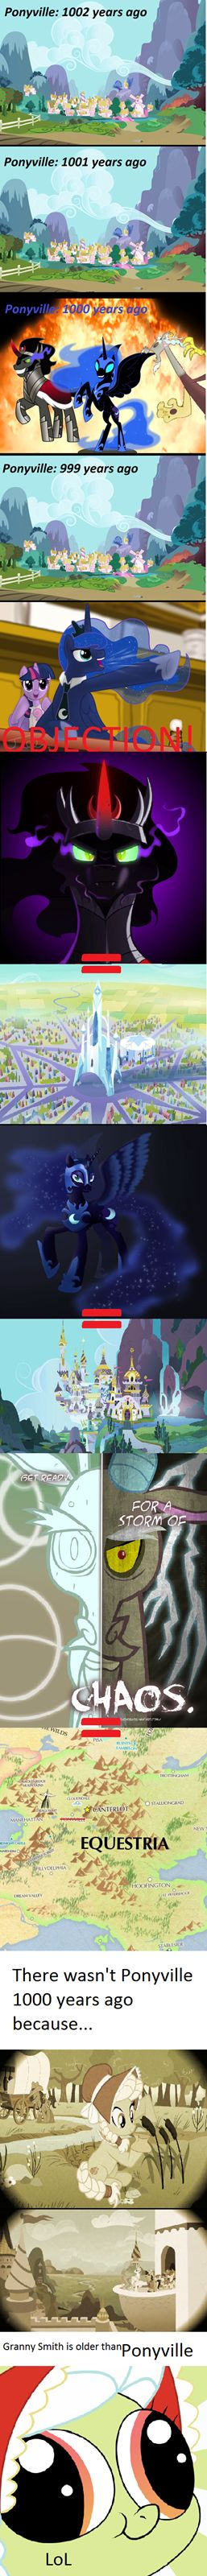 Nightmare moon actually attacked the castle of the two sisters in the everfree forest. Not canterlot